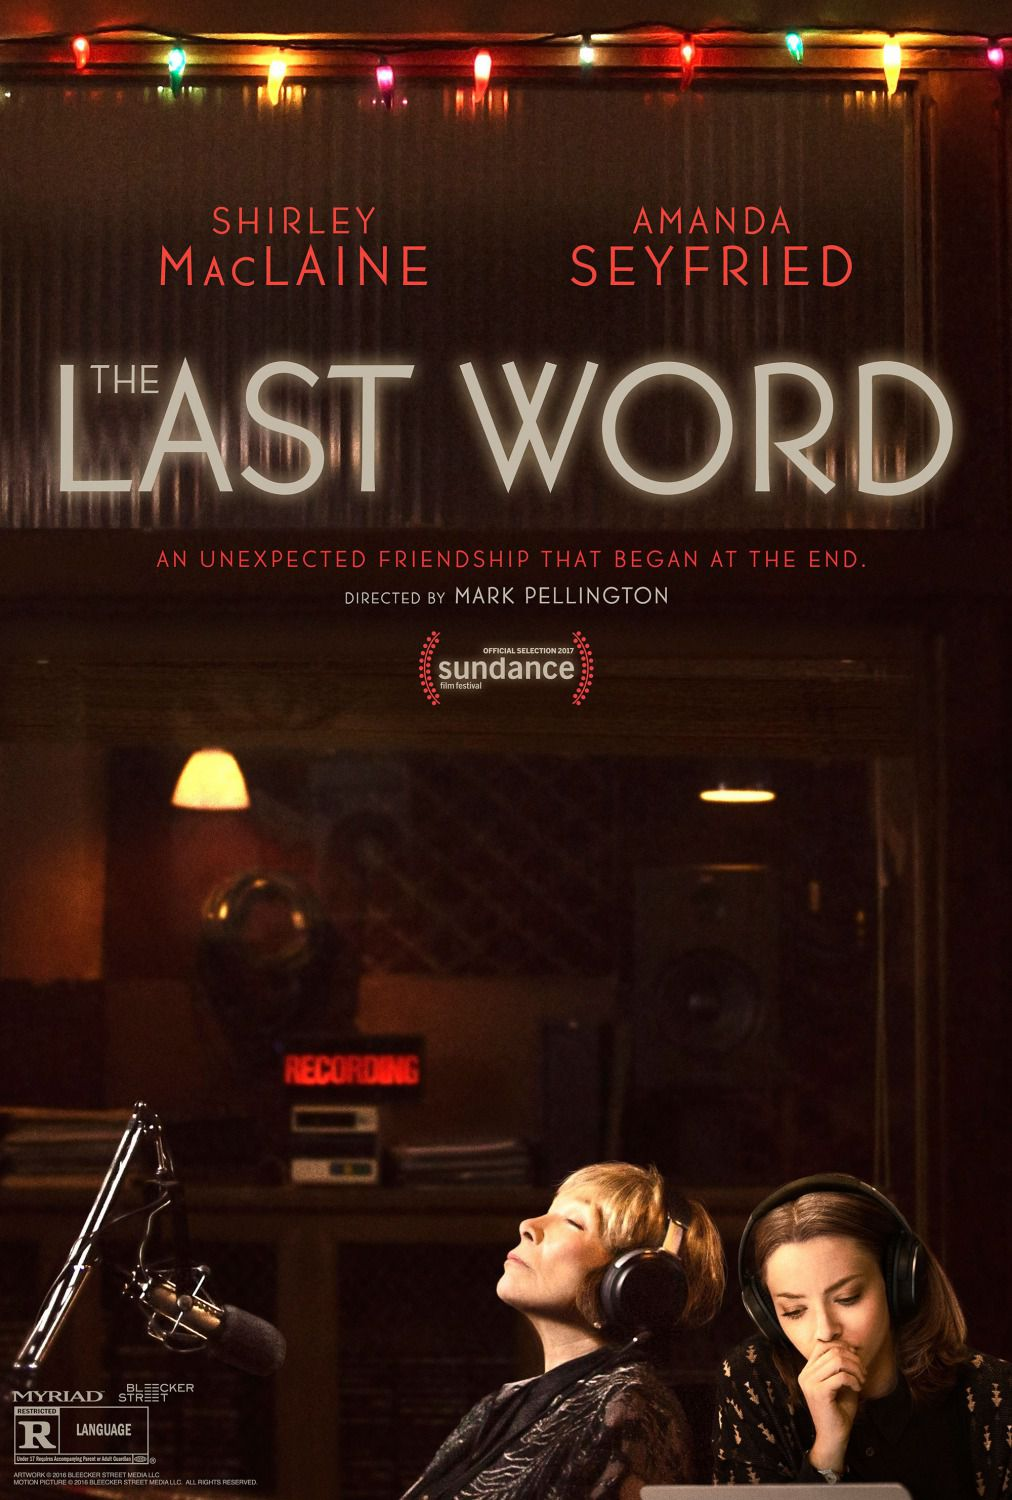 Film - Adorabile Nemica - Last Word  - Amanda Seyfried - Shirley MacLaine - Thomas Sadosky